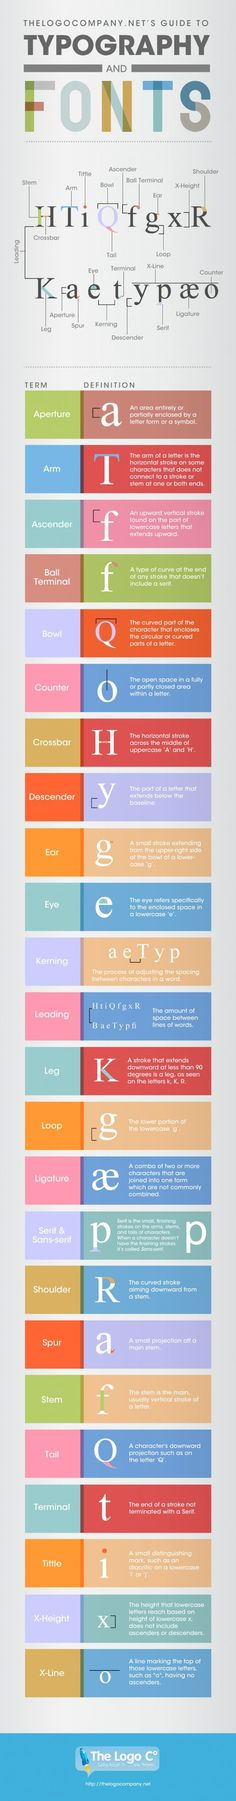 A Simple Guide to Typography & Fonts [Infographic], by @HubSpot